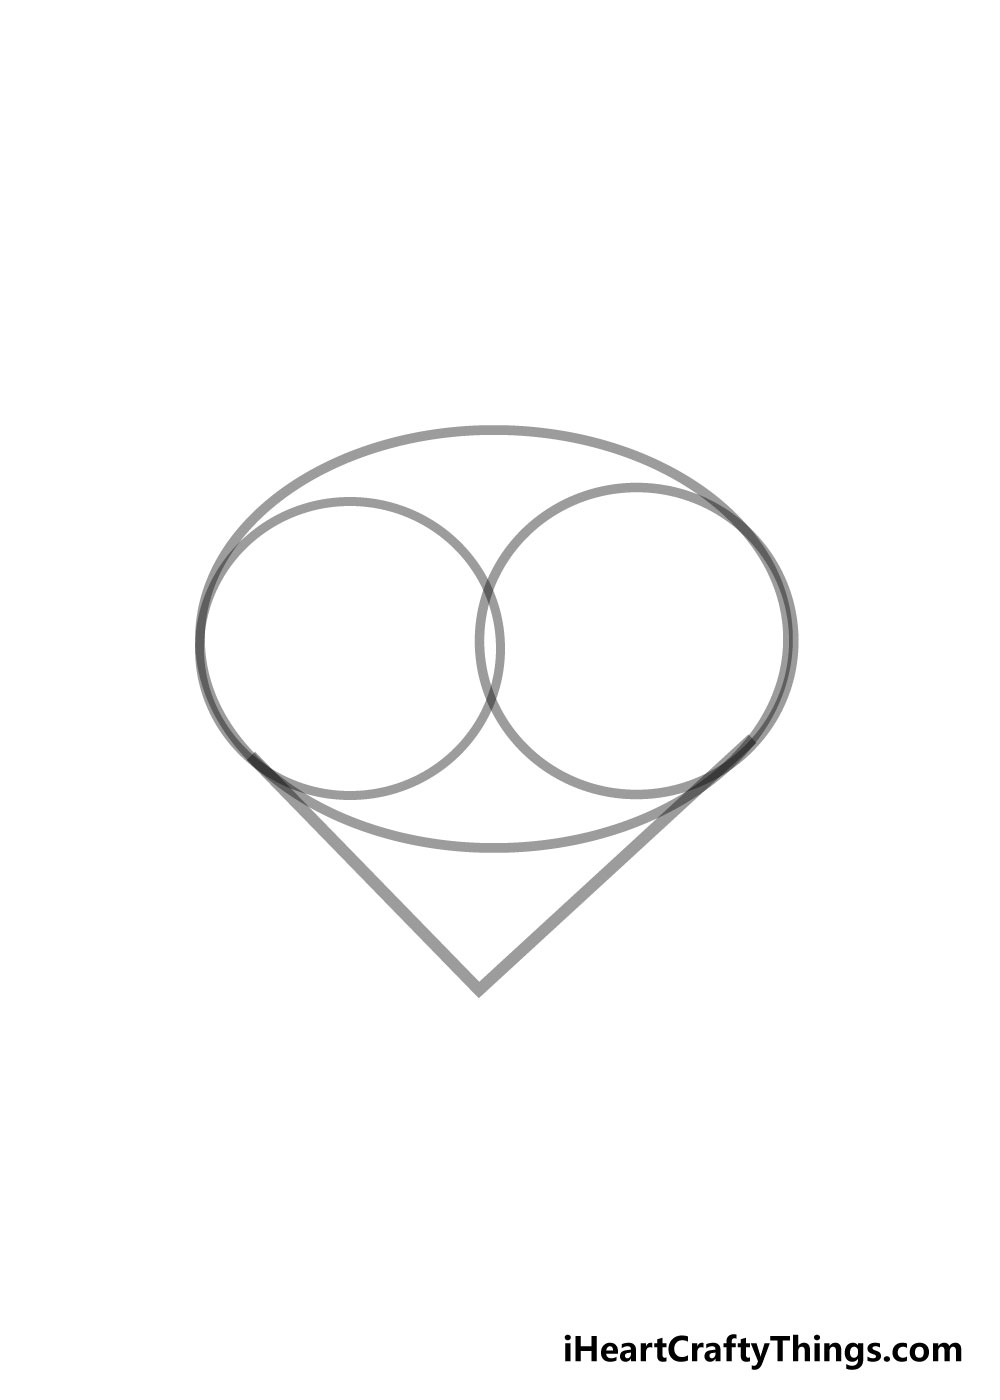 heart drawing step 3